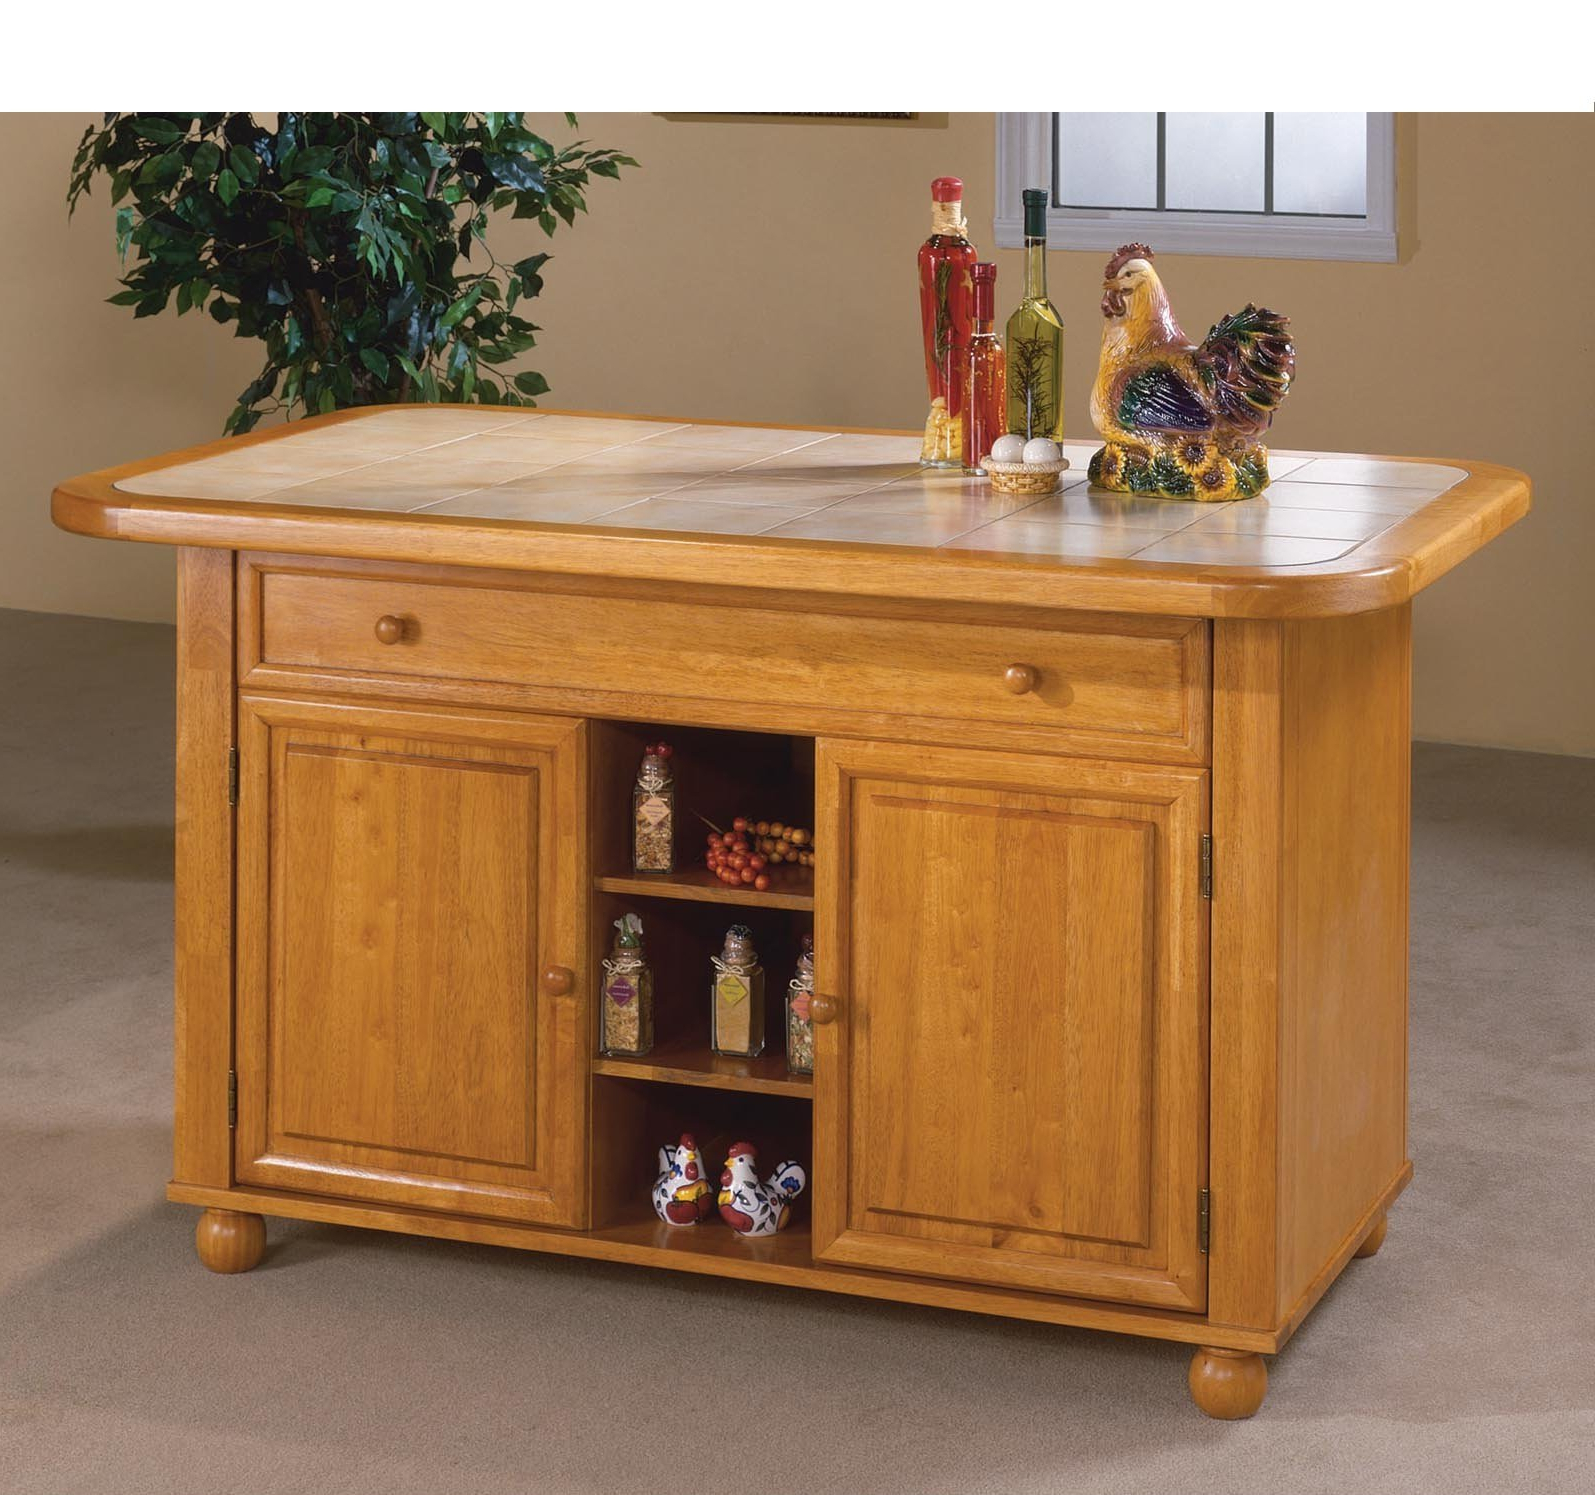 Latest Lockwood Sideboards For Loon Peak Lockwood Kitchen Island With Ceramic Tile Top & Reviews (Gallery 4 of 20)